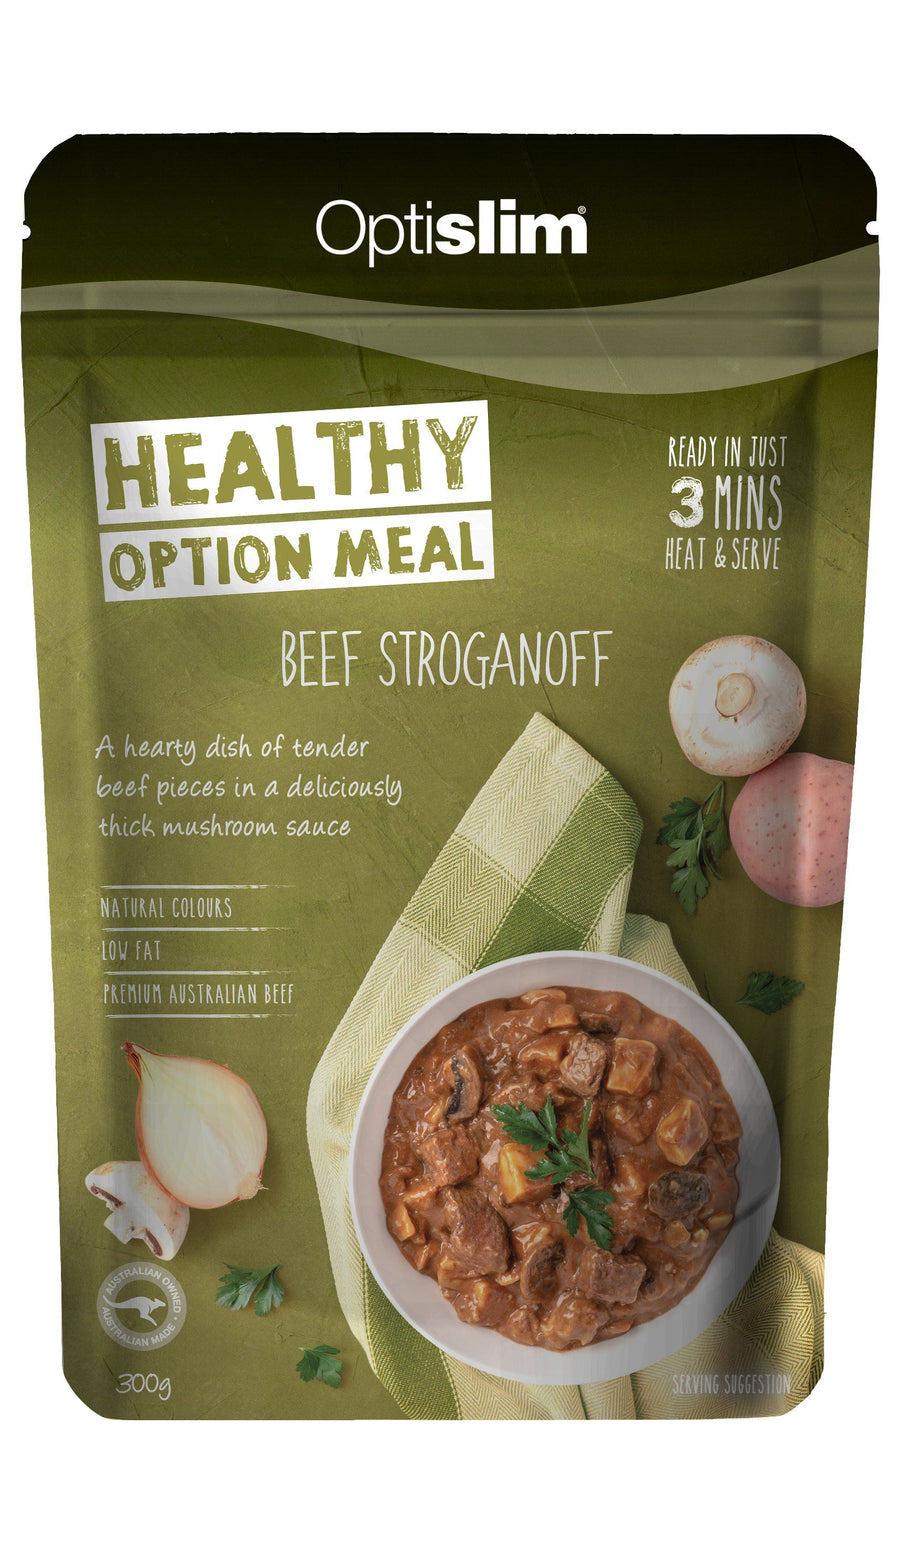 Healthy Option Meal Beef Stroganoff New Weight Loss OptiSlim